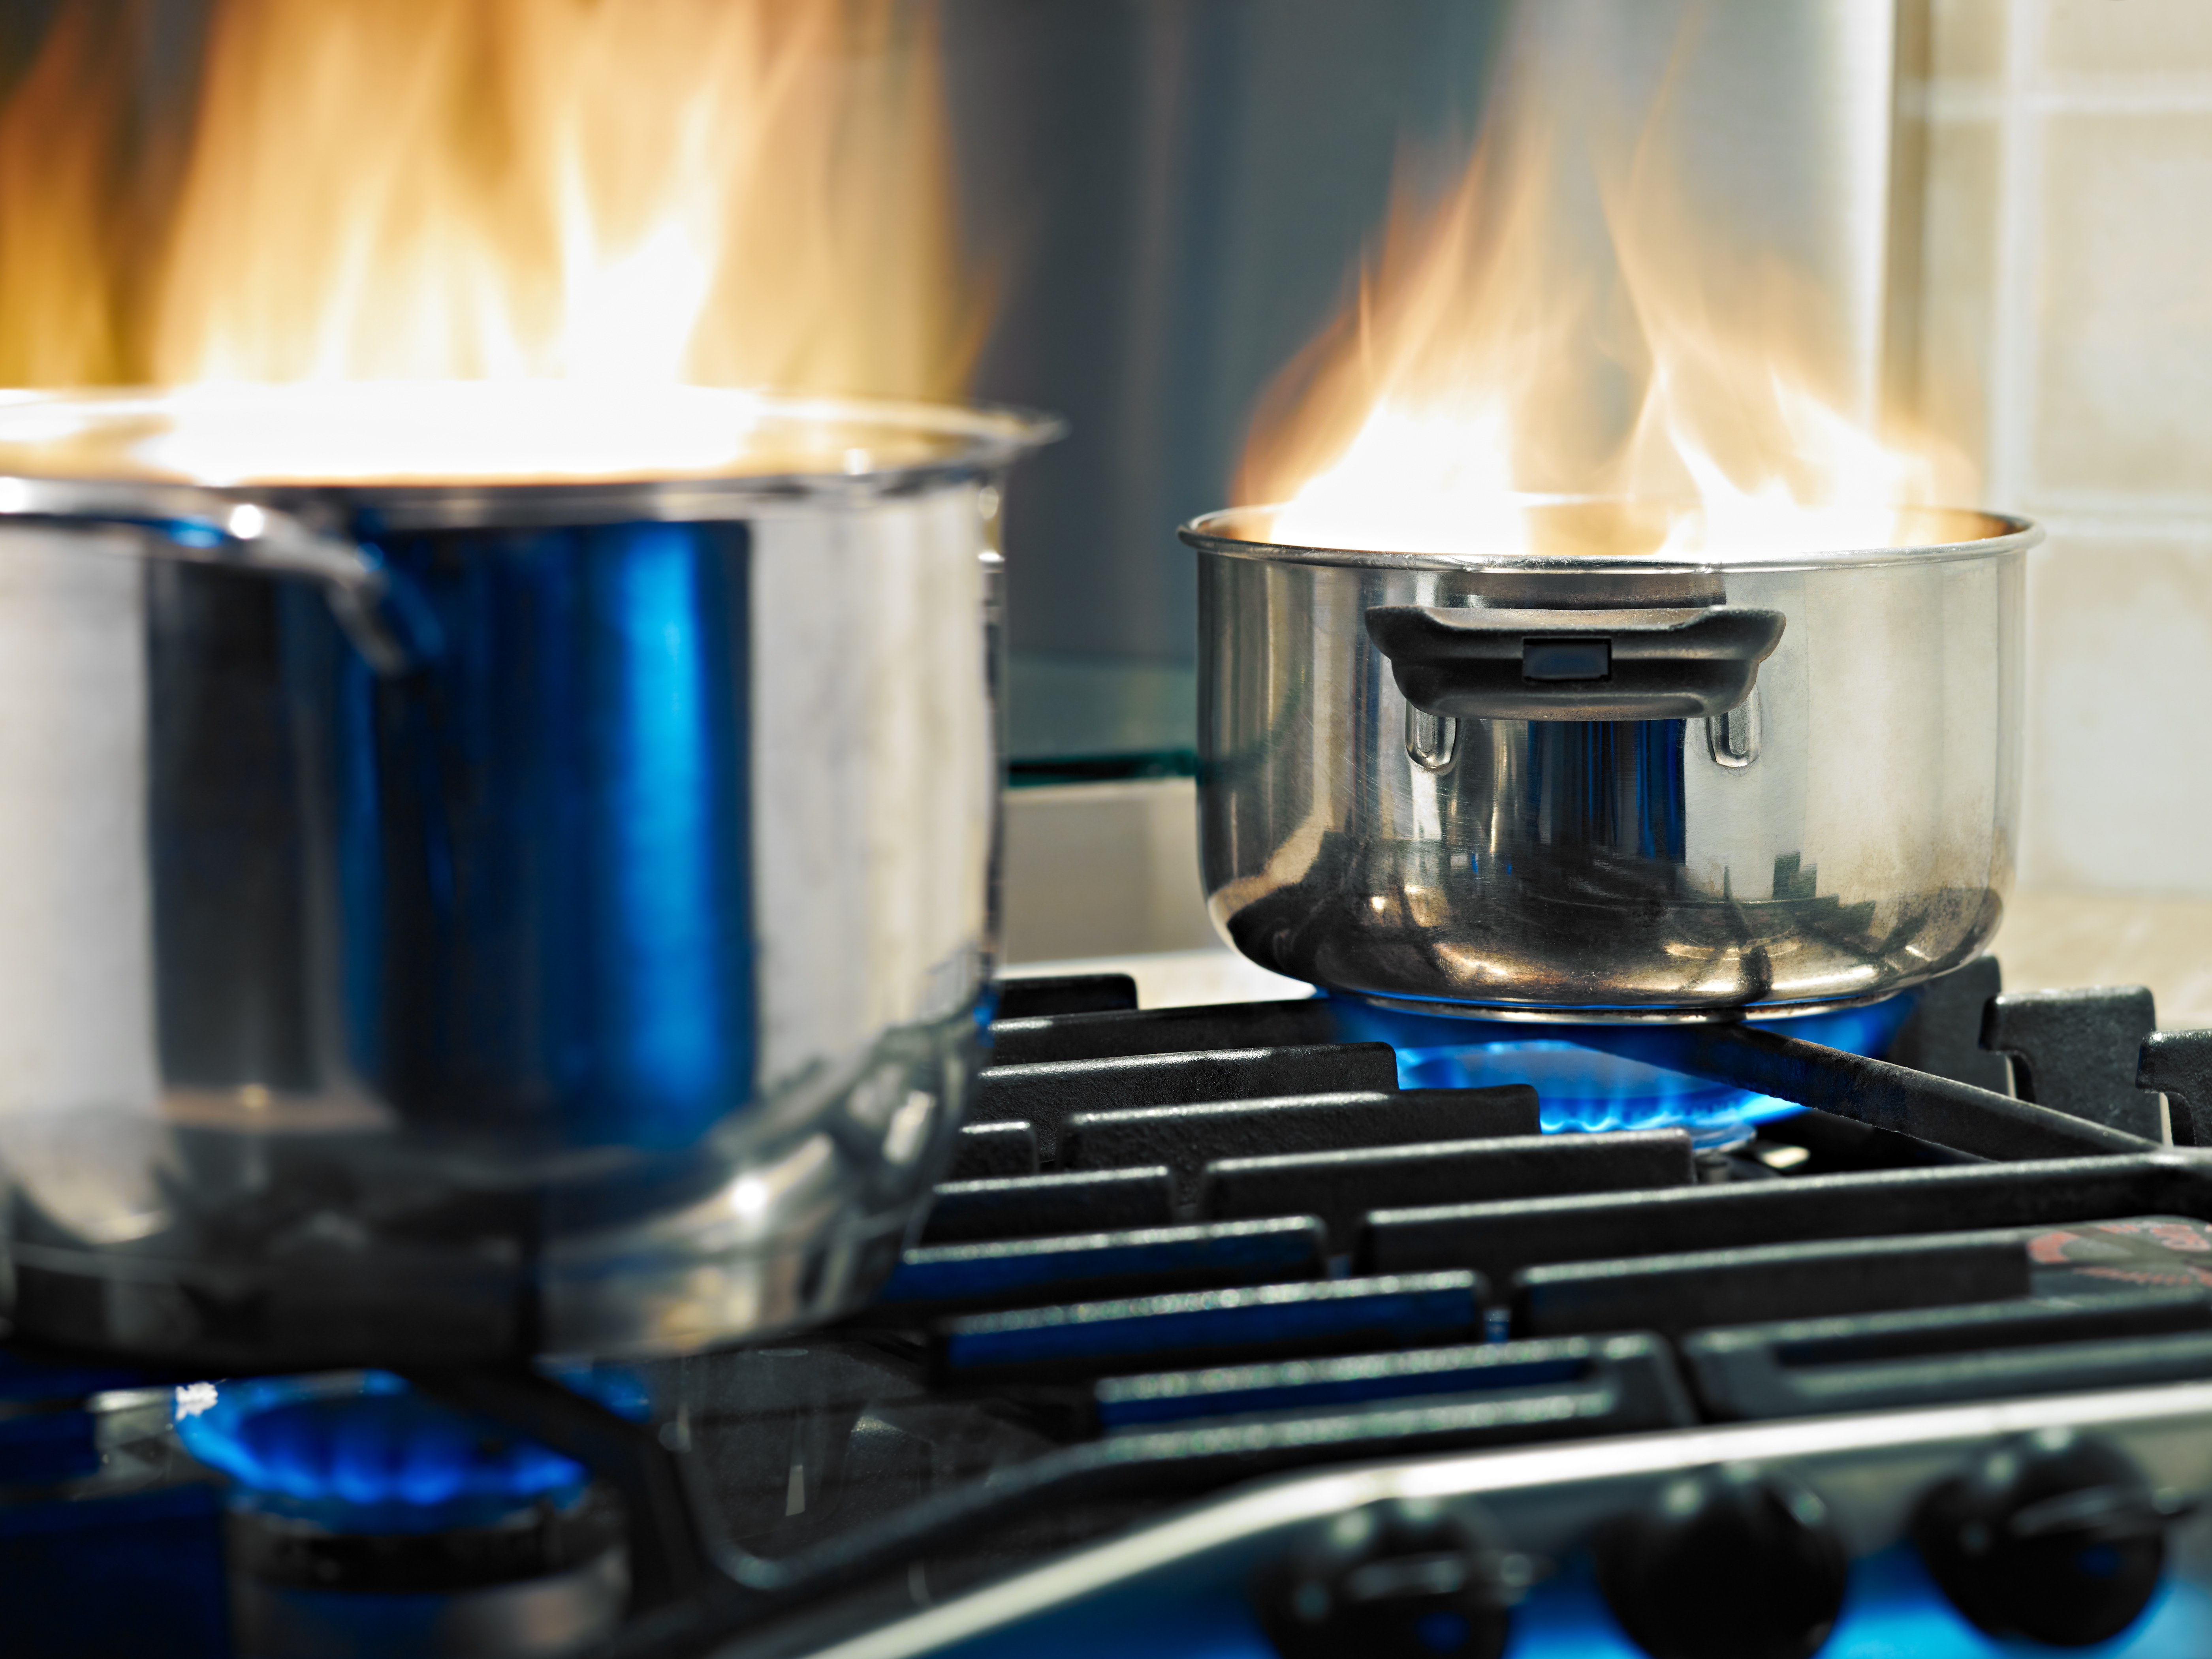 pots on stove fire hazard